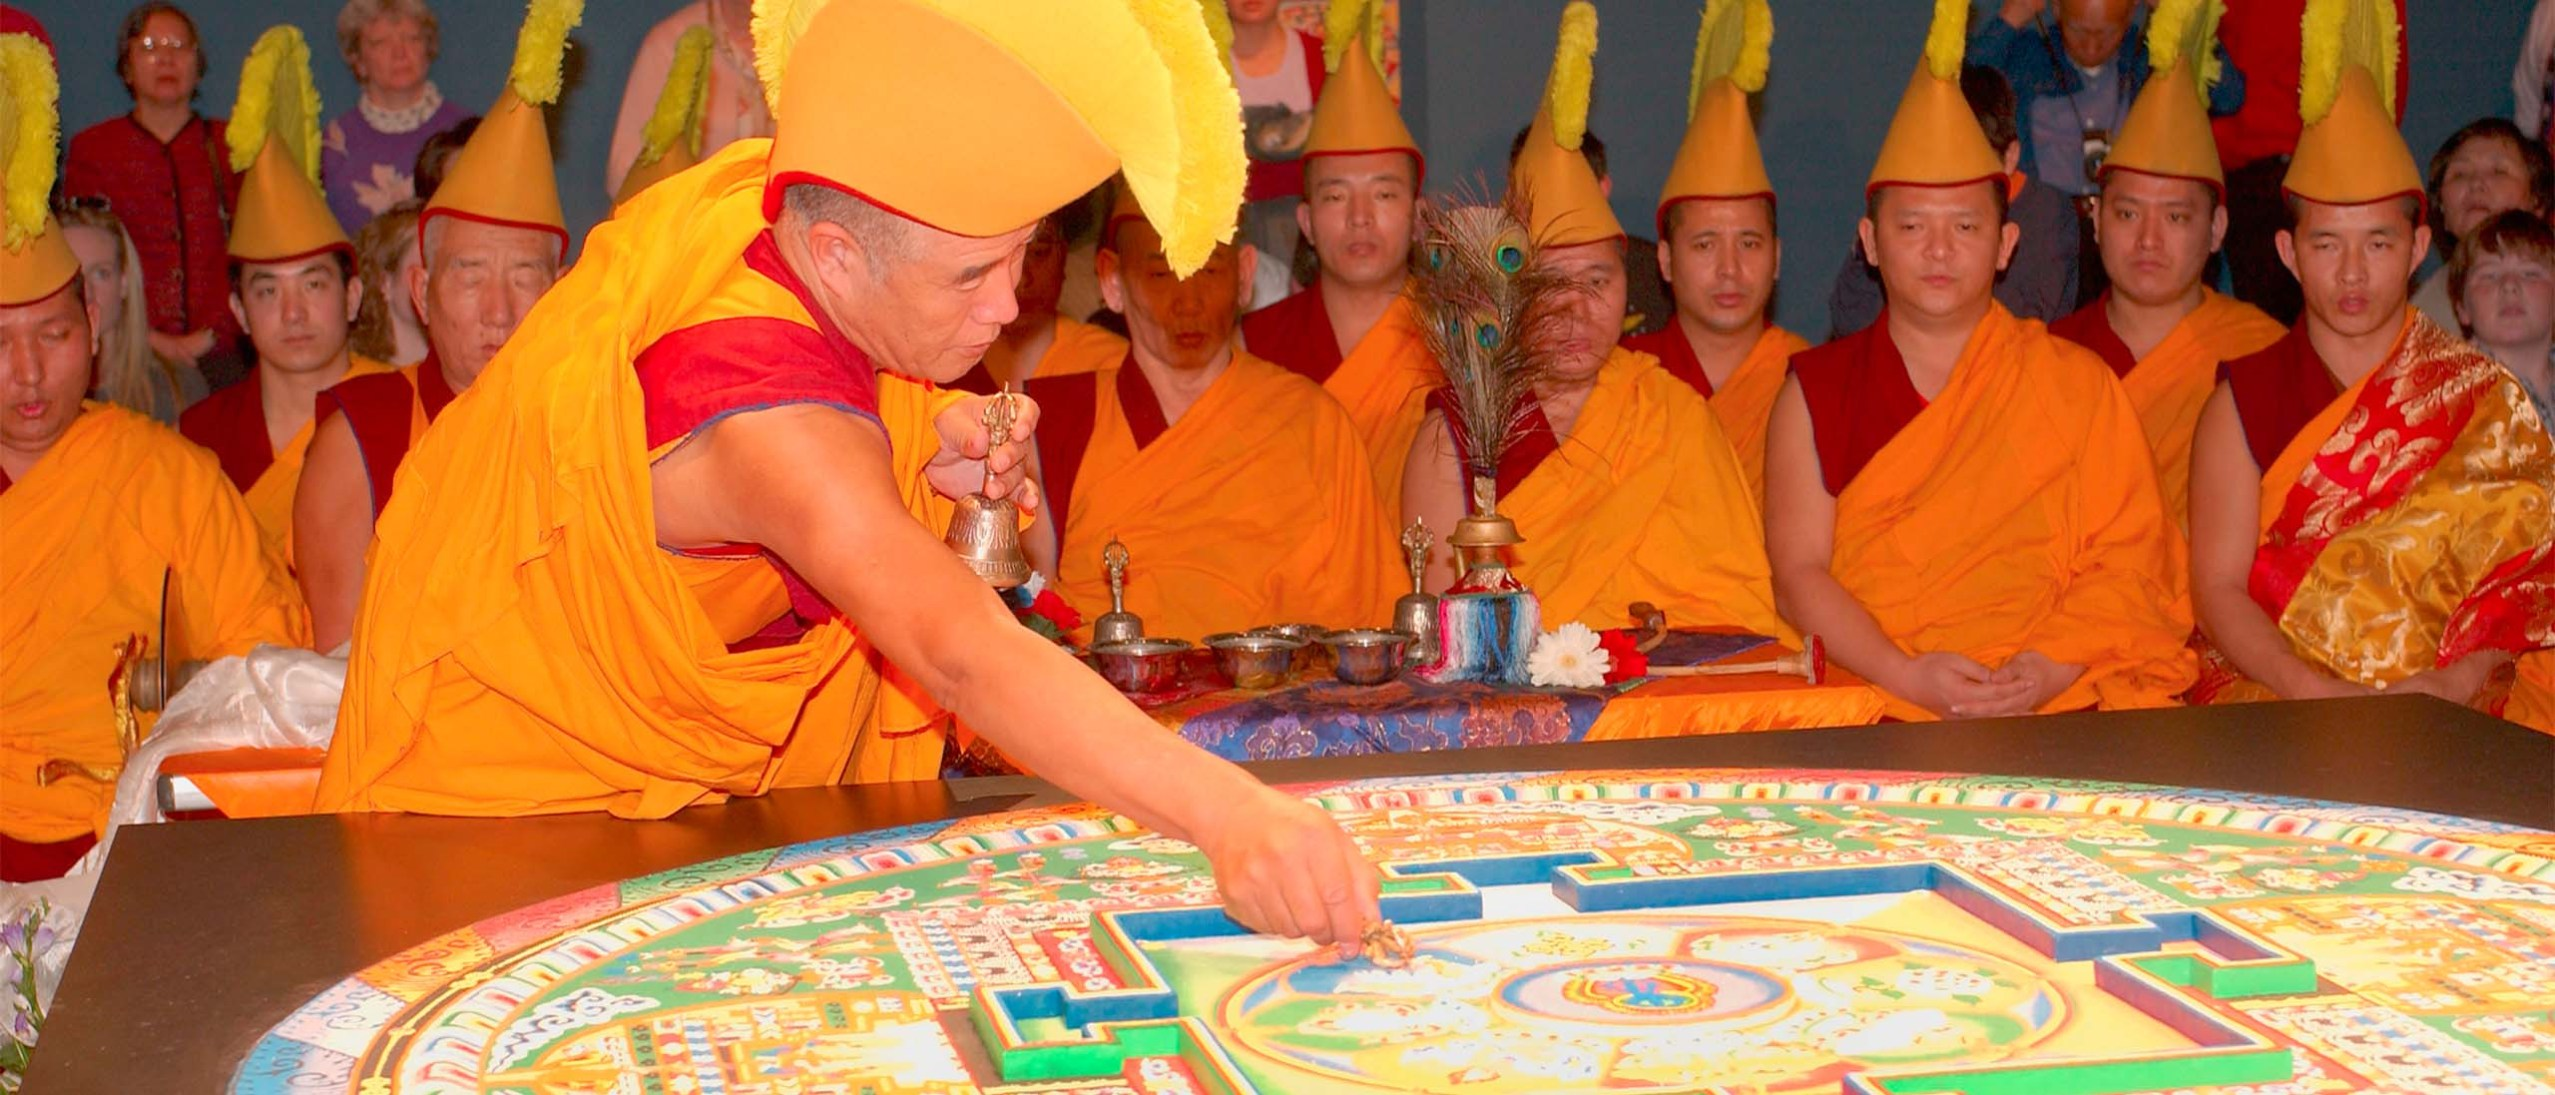 A monk in red and gold robes, wearing a yellow crested headdress leans over the finished mandala, holding a bell. Monks wearing the same clothes are seated in meditation behind him.